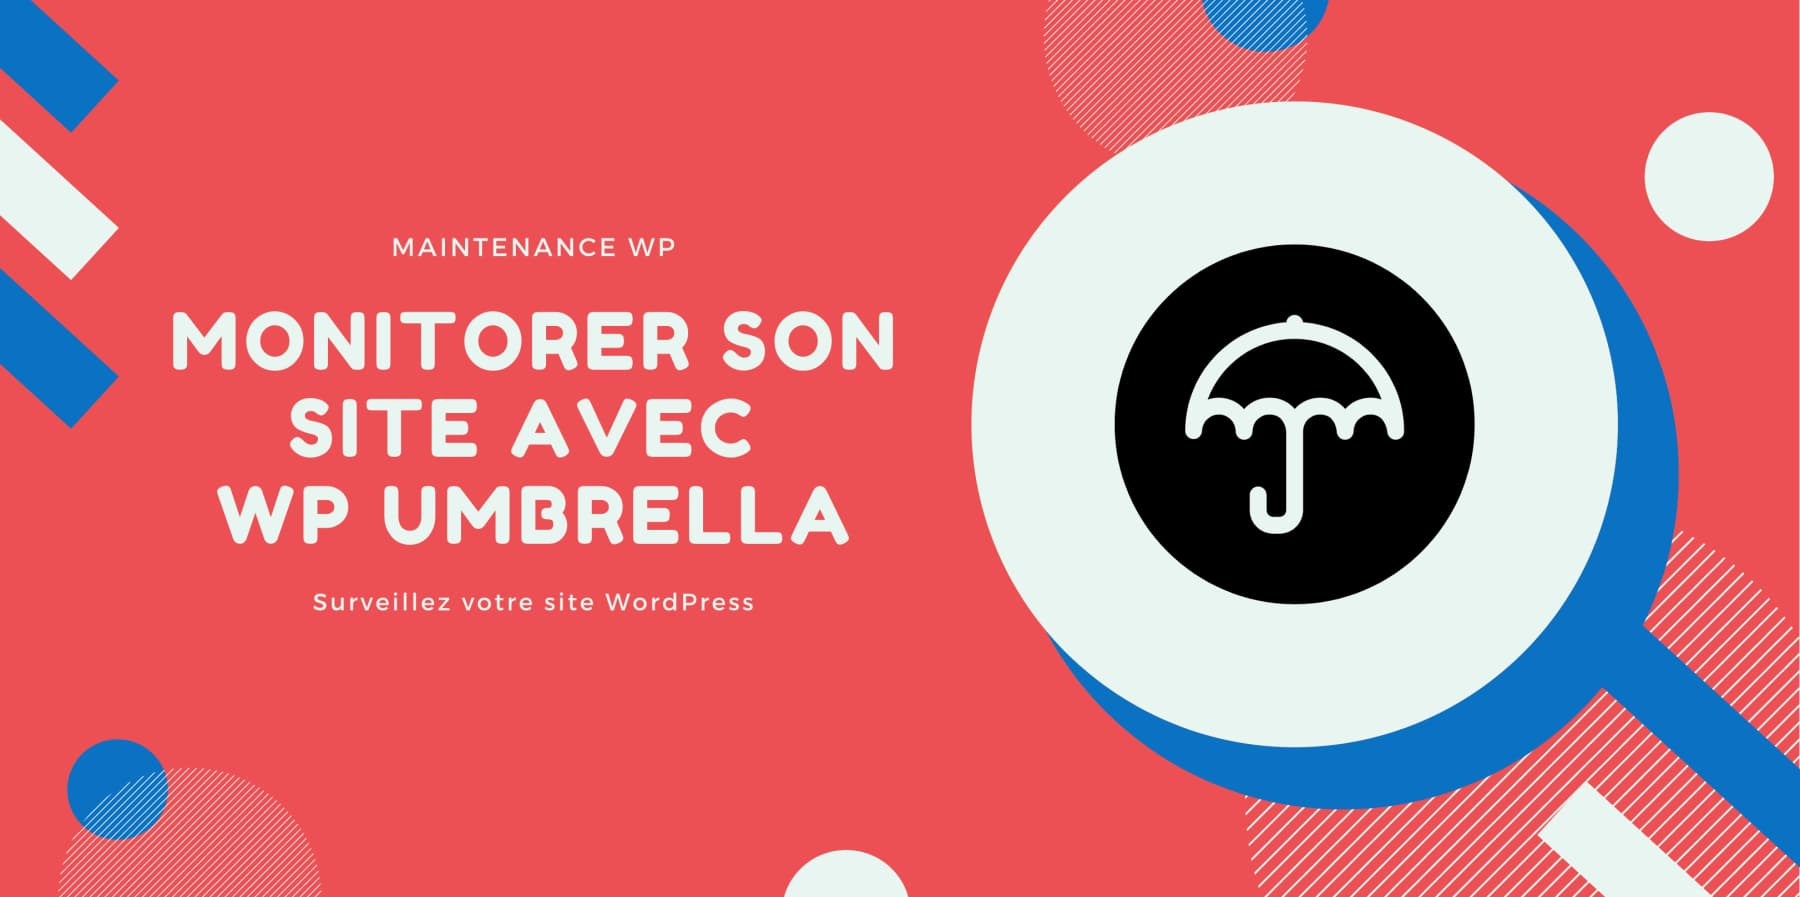 WP Umbrella monitorage de sites WordPress